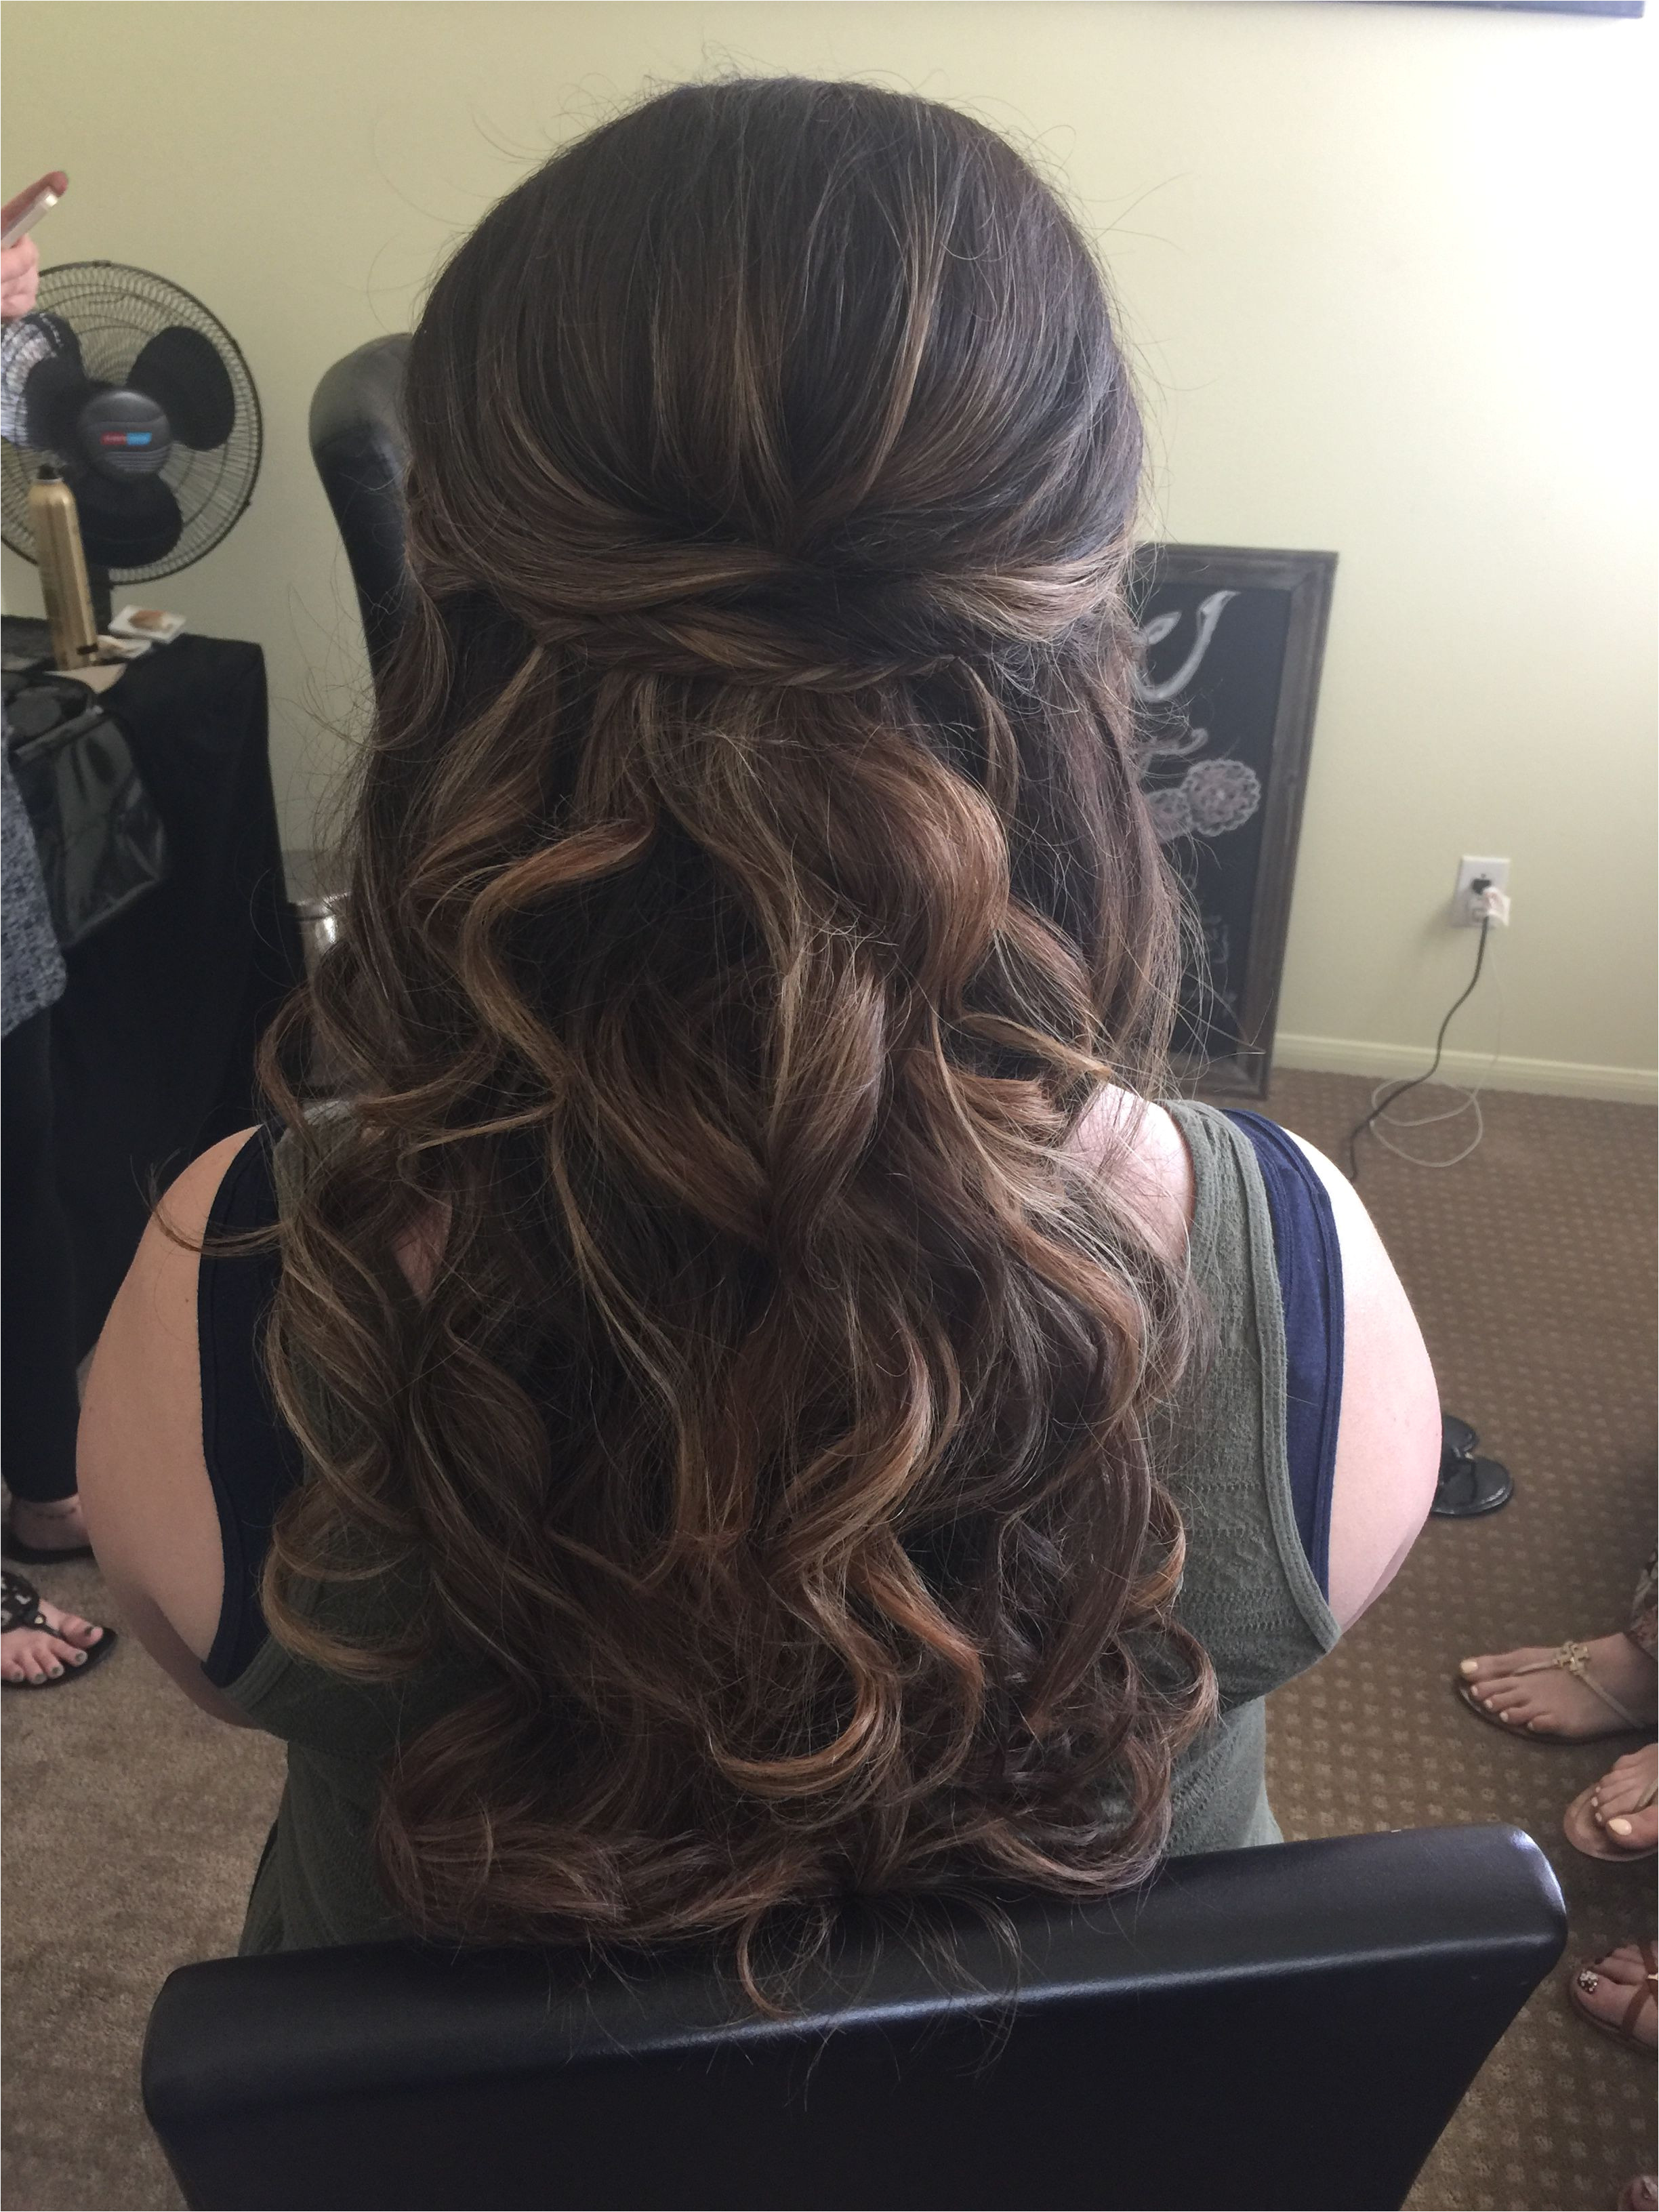 Show me your half up down hairstyles with headband and veil Weddingbee